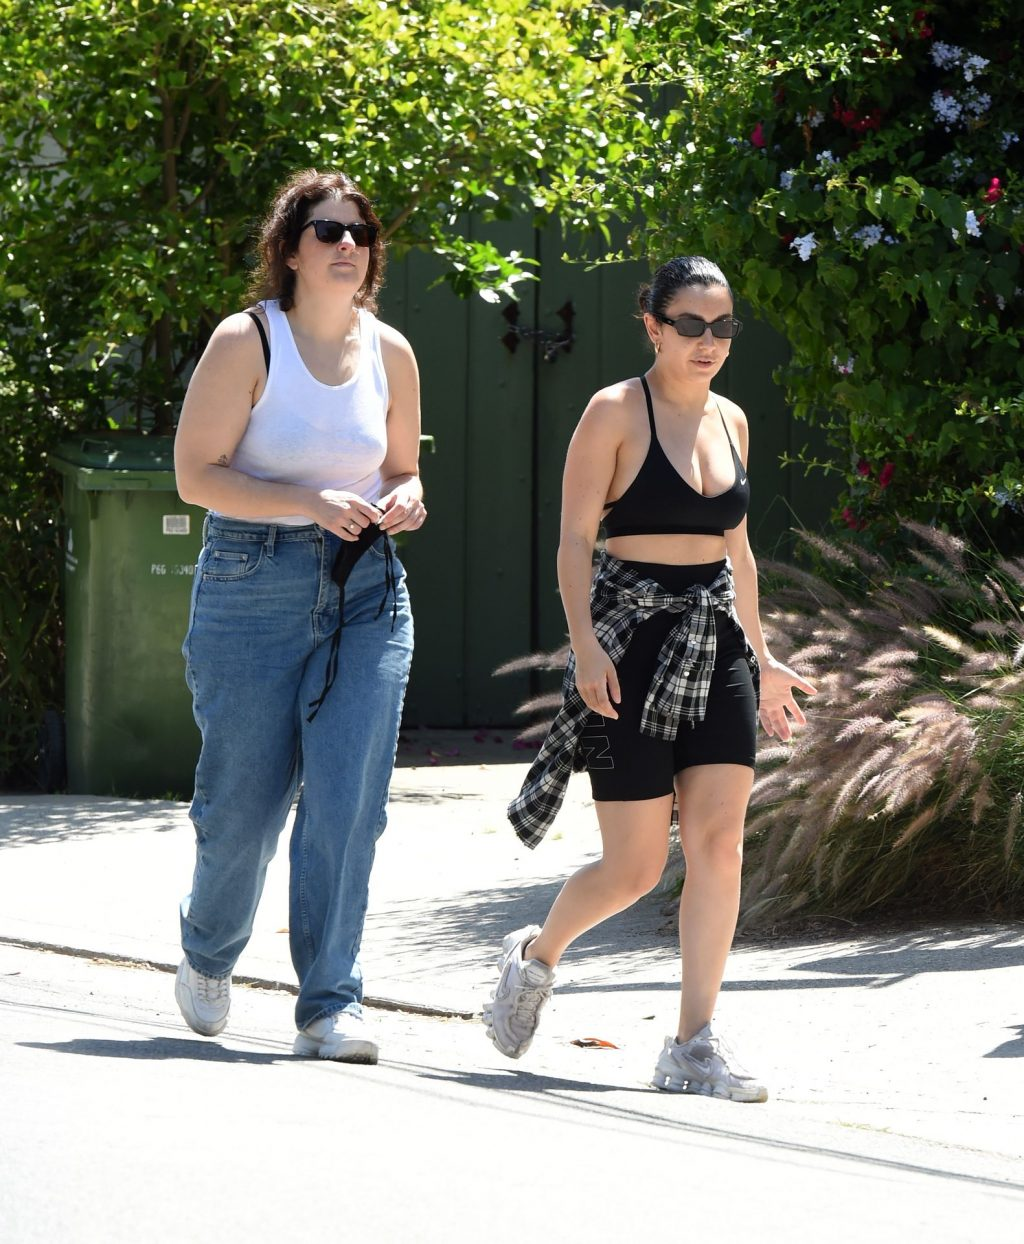 Busty Charli XCX is Pictured on a Stroll After Releasing a New Album (30 Photos)